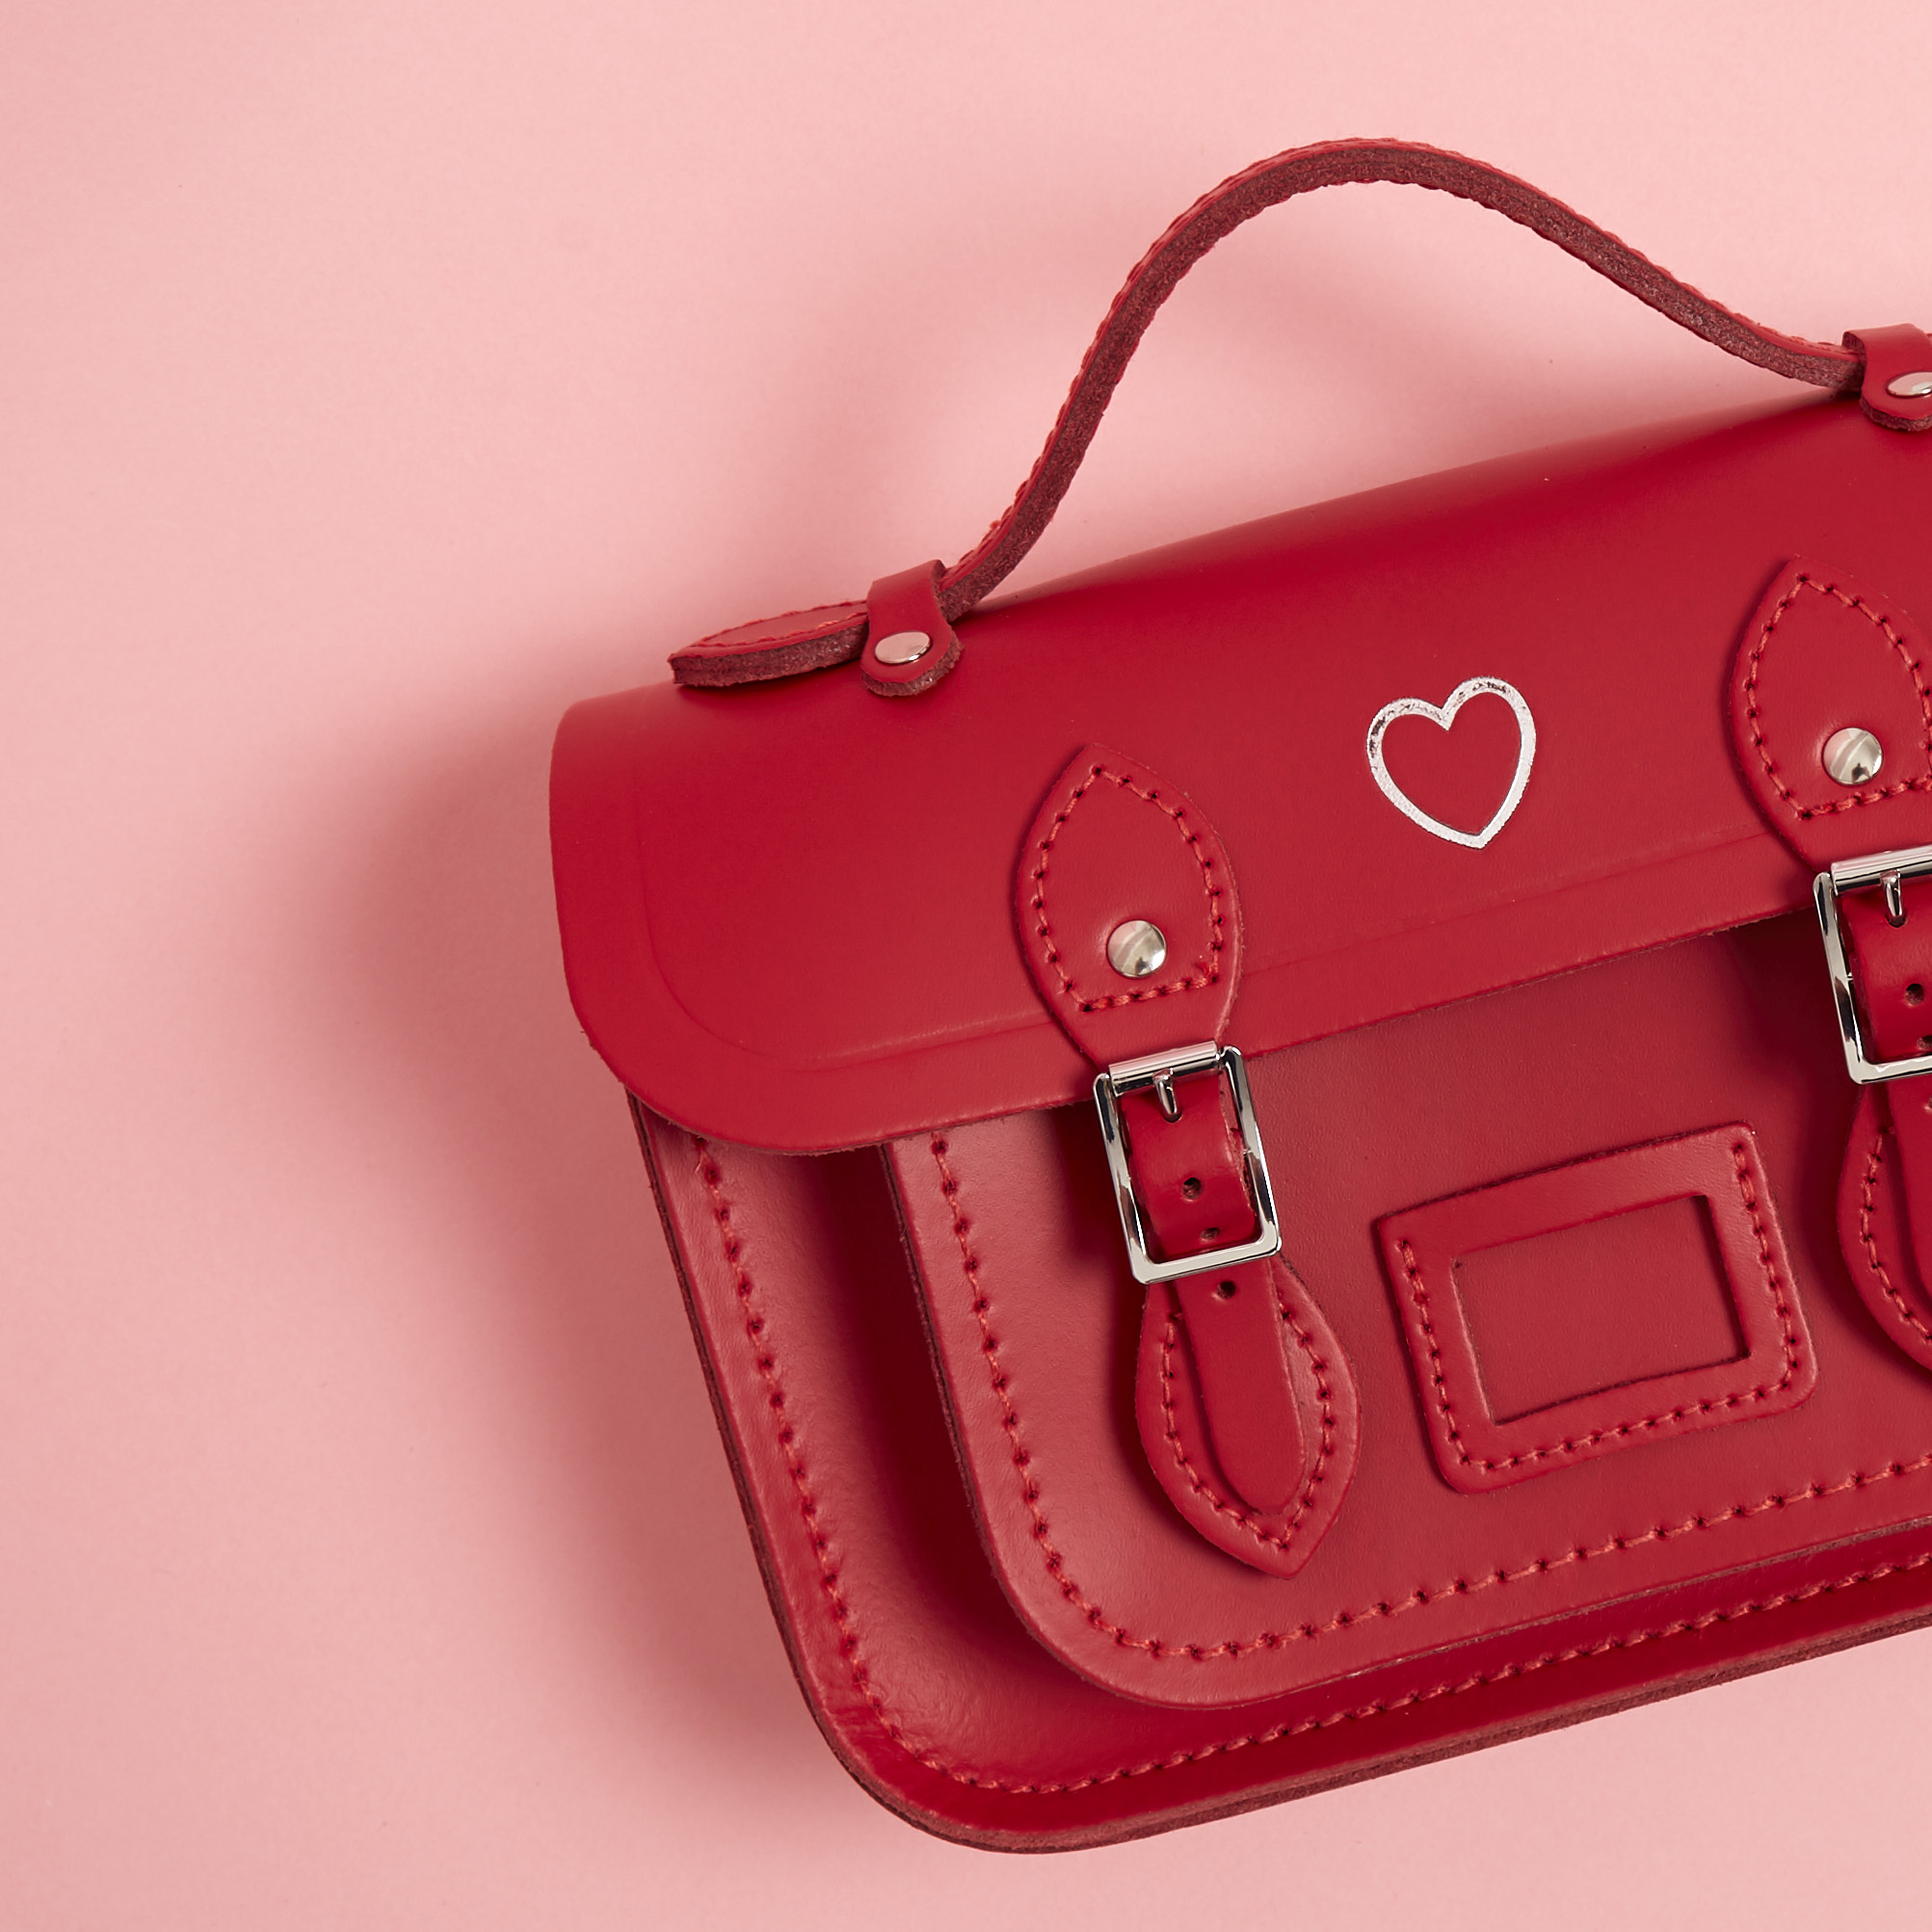 20% Off Red Bags The Cambridge Satchel Company